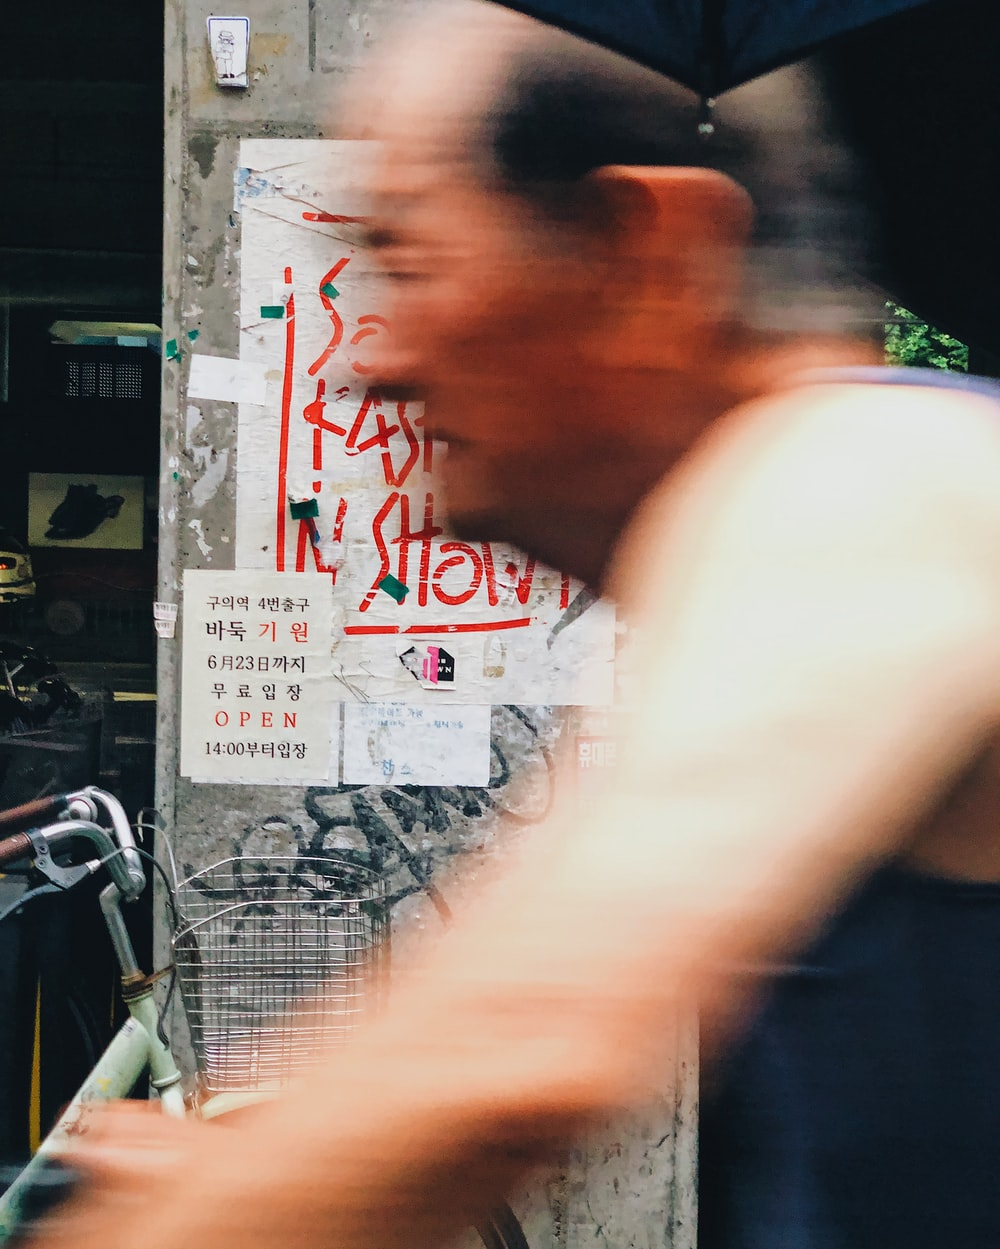 time-lapse photography of man passing by a street